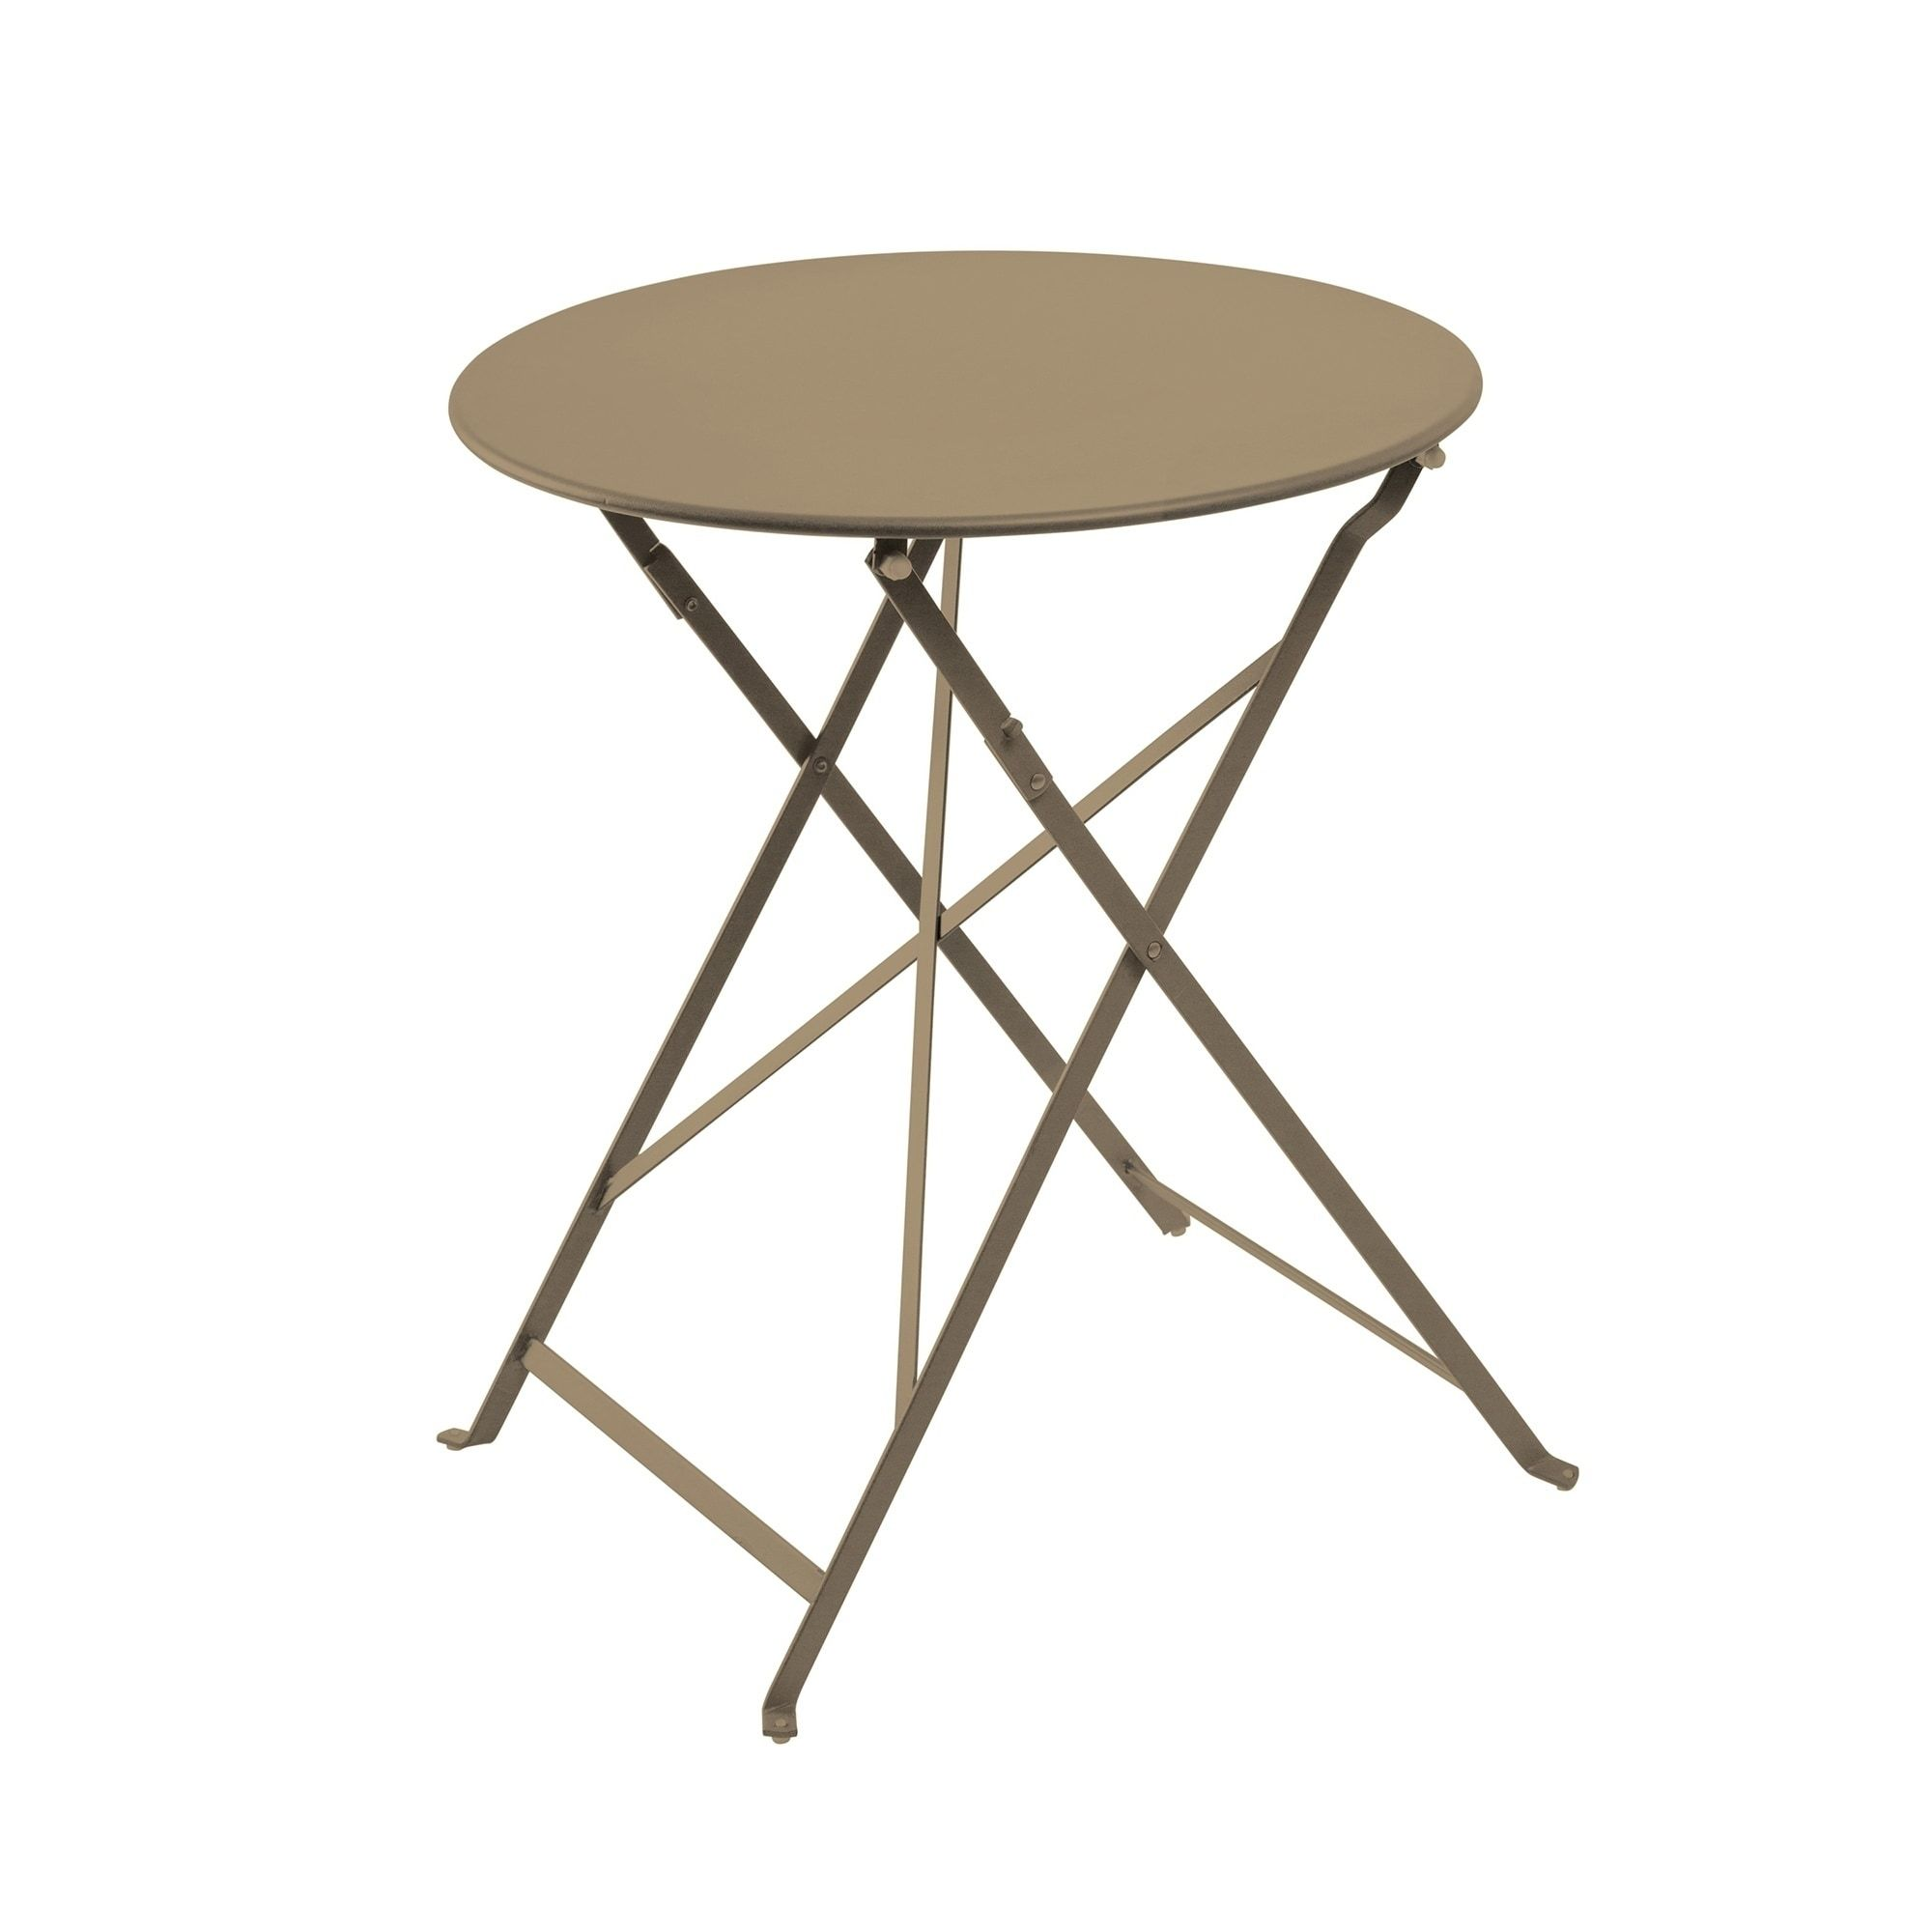 Jamesdar Cafe Indooroutdoor Round Table (